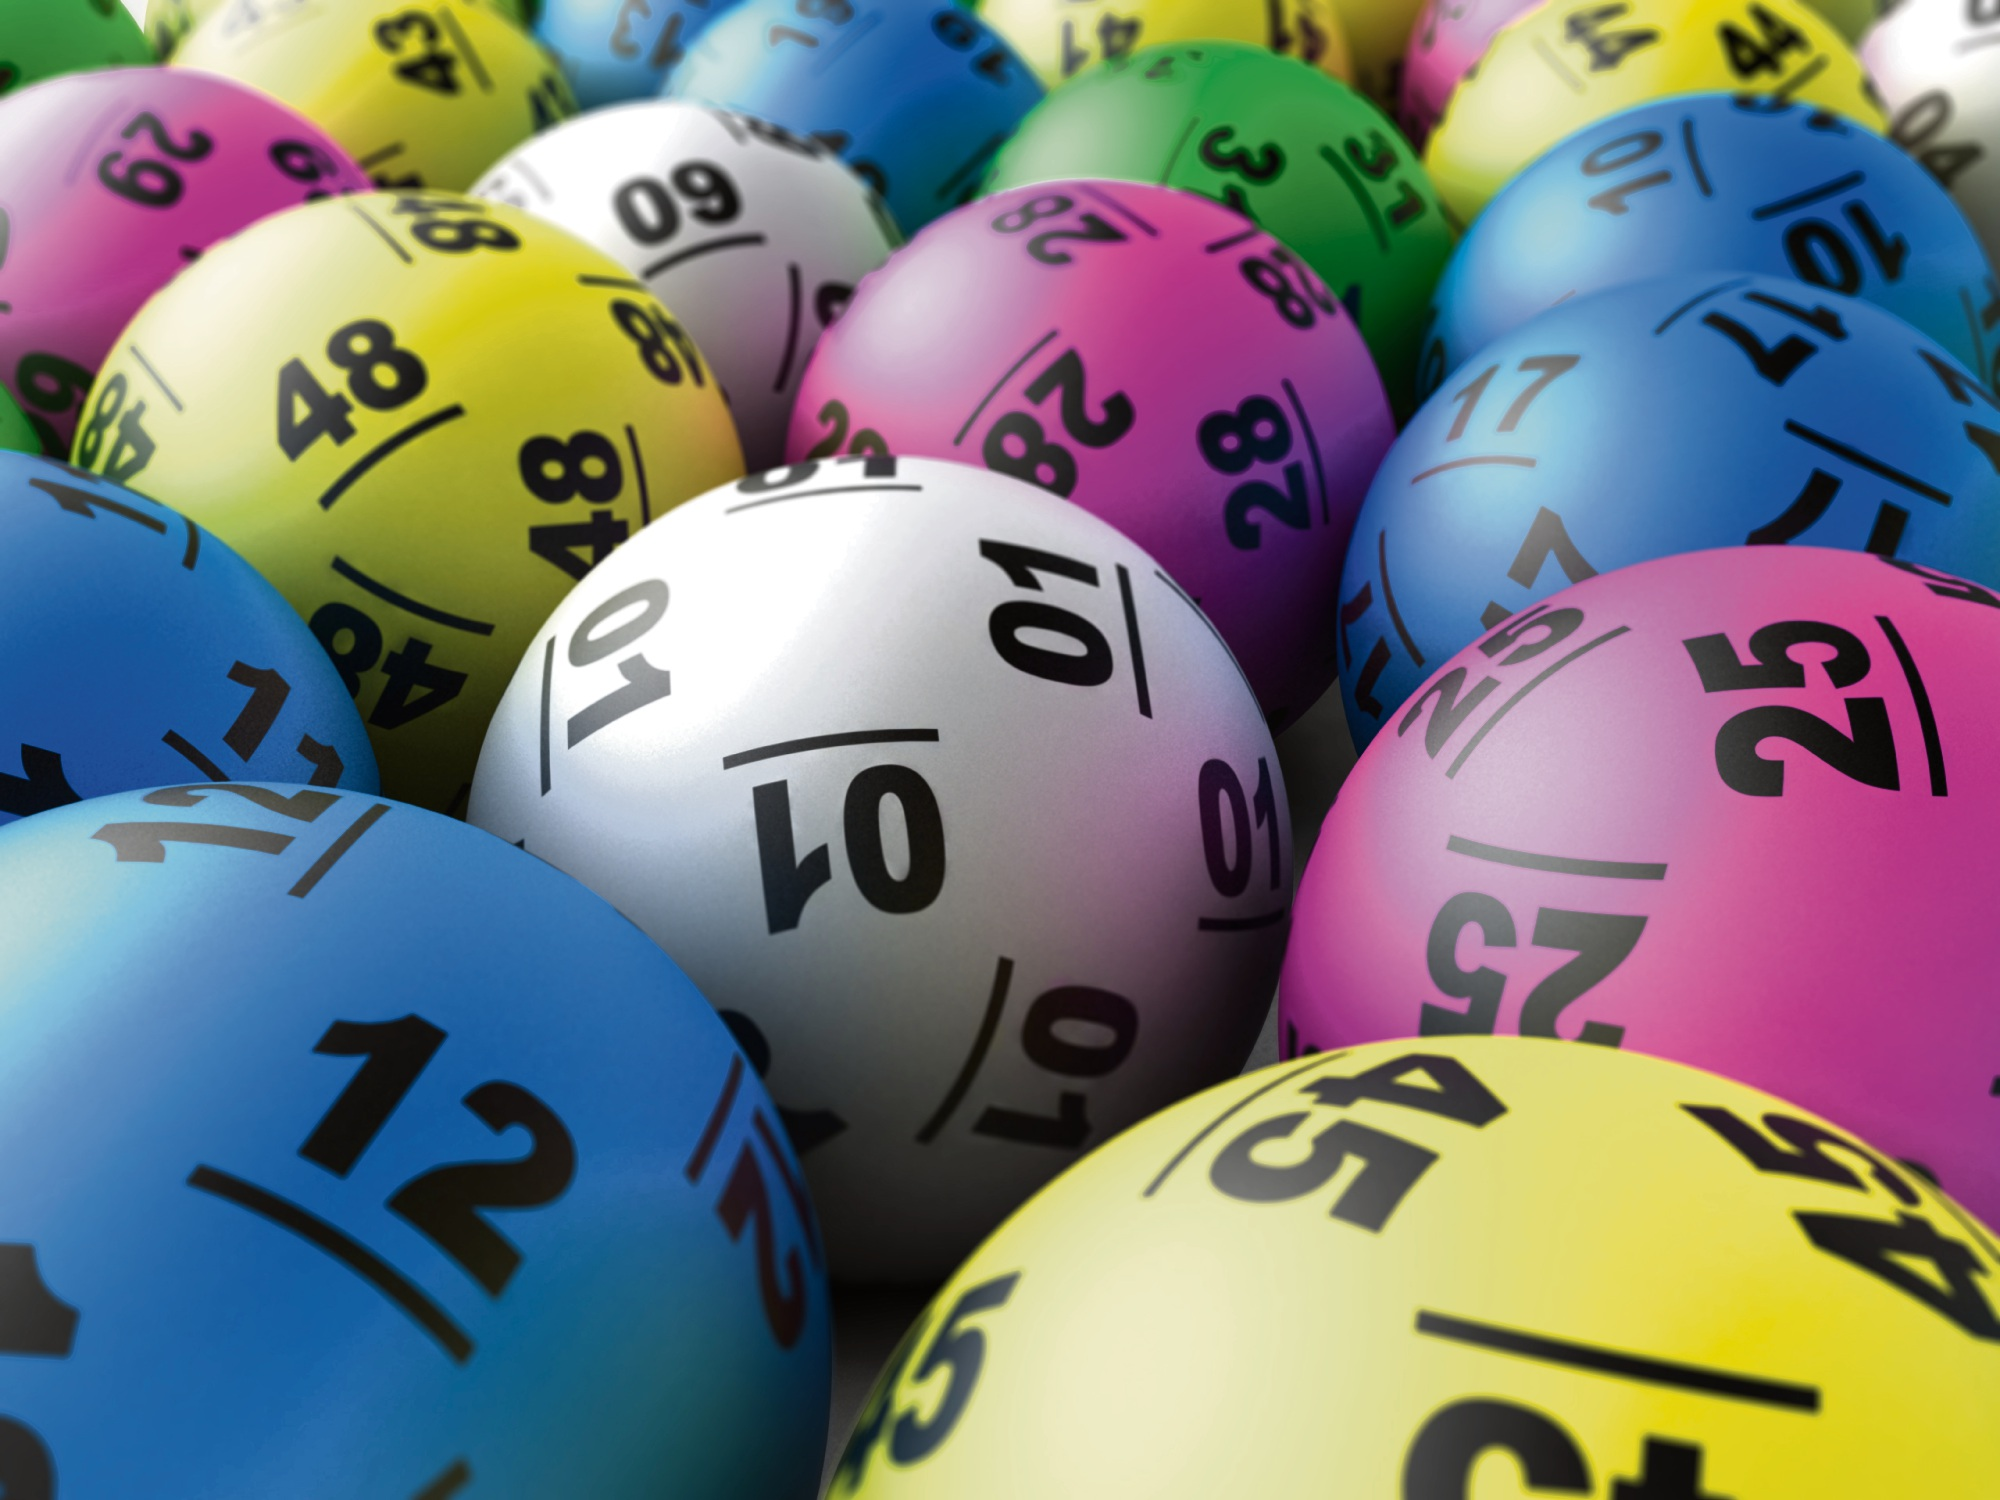 One lucky WA punter $2 million richer after Lotto win